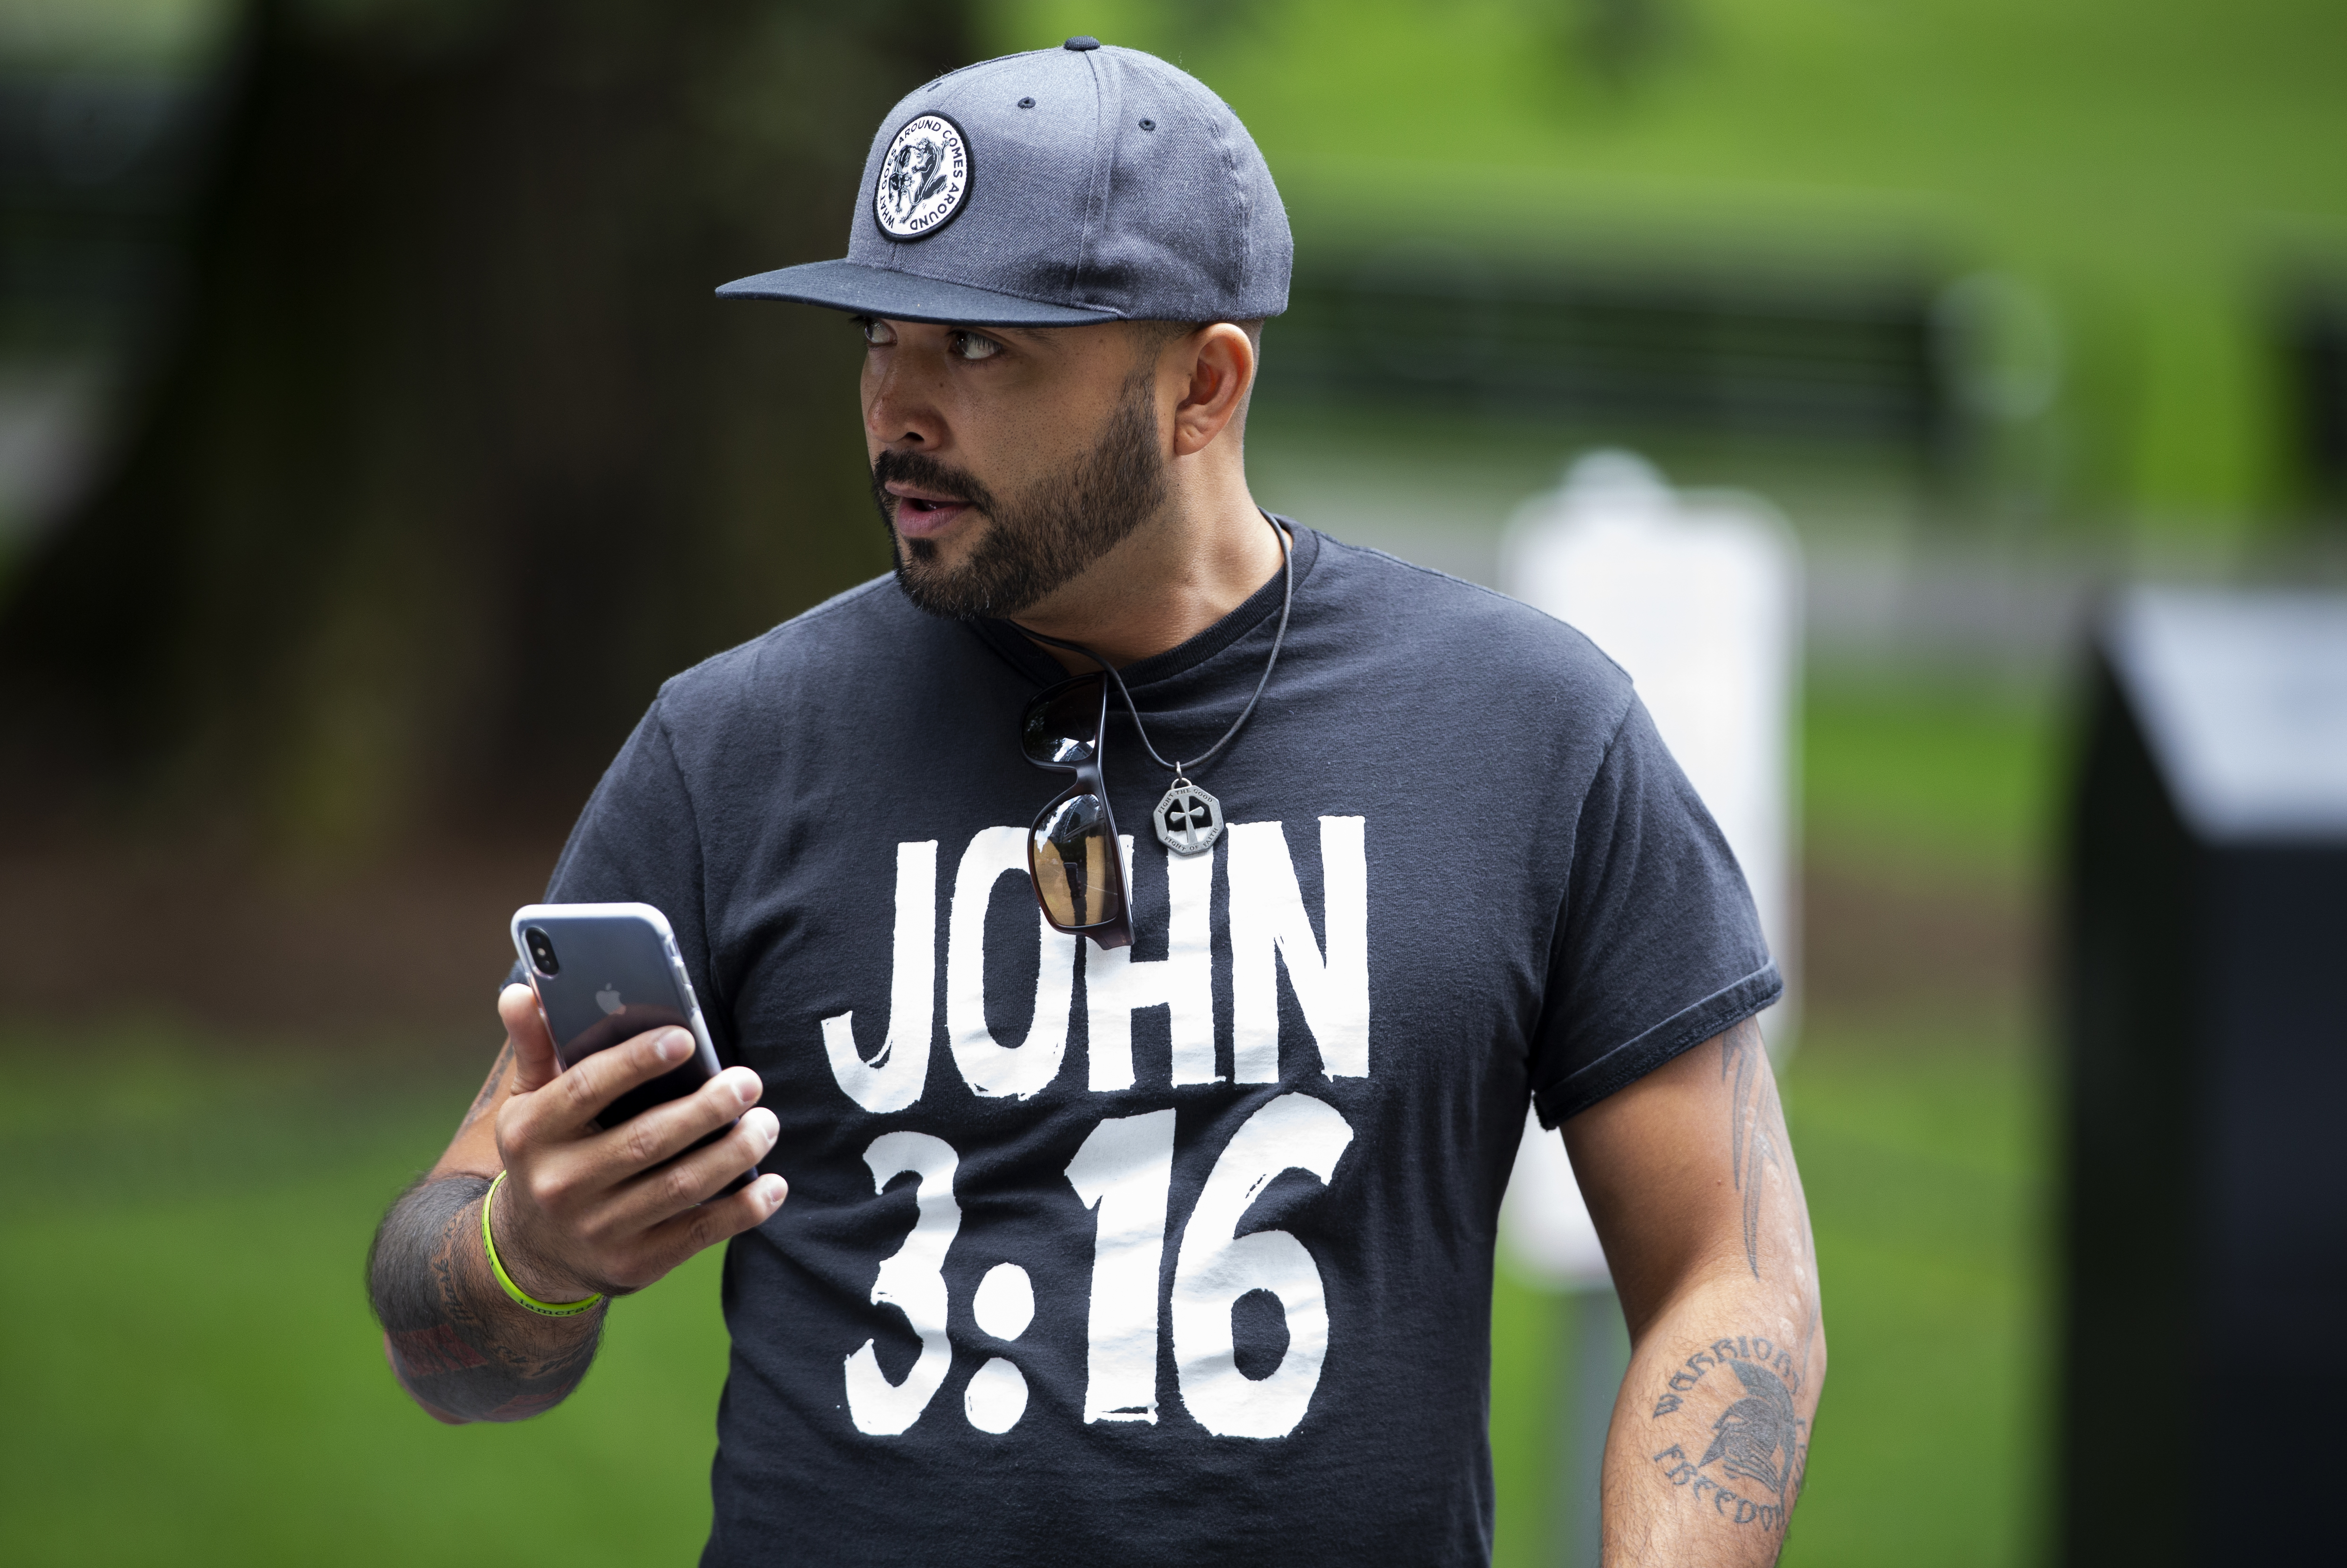 Patriot Prayer leader Joey Gibson uses untraceable church to drum up legal defense funds